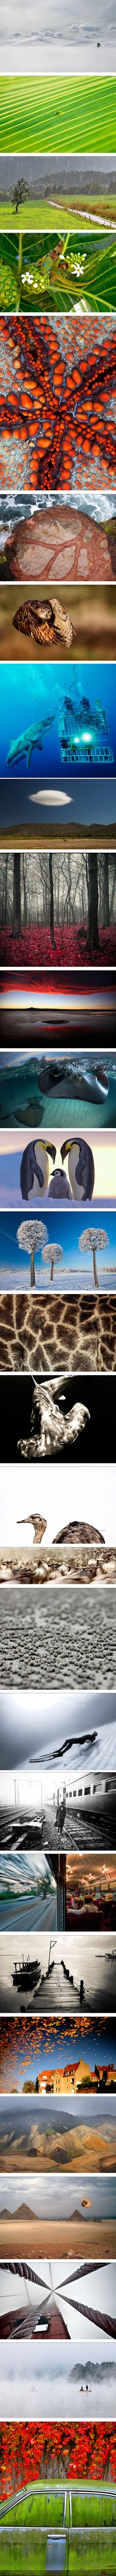 Best nature pictures of 2012 NationalGeographic.com